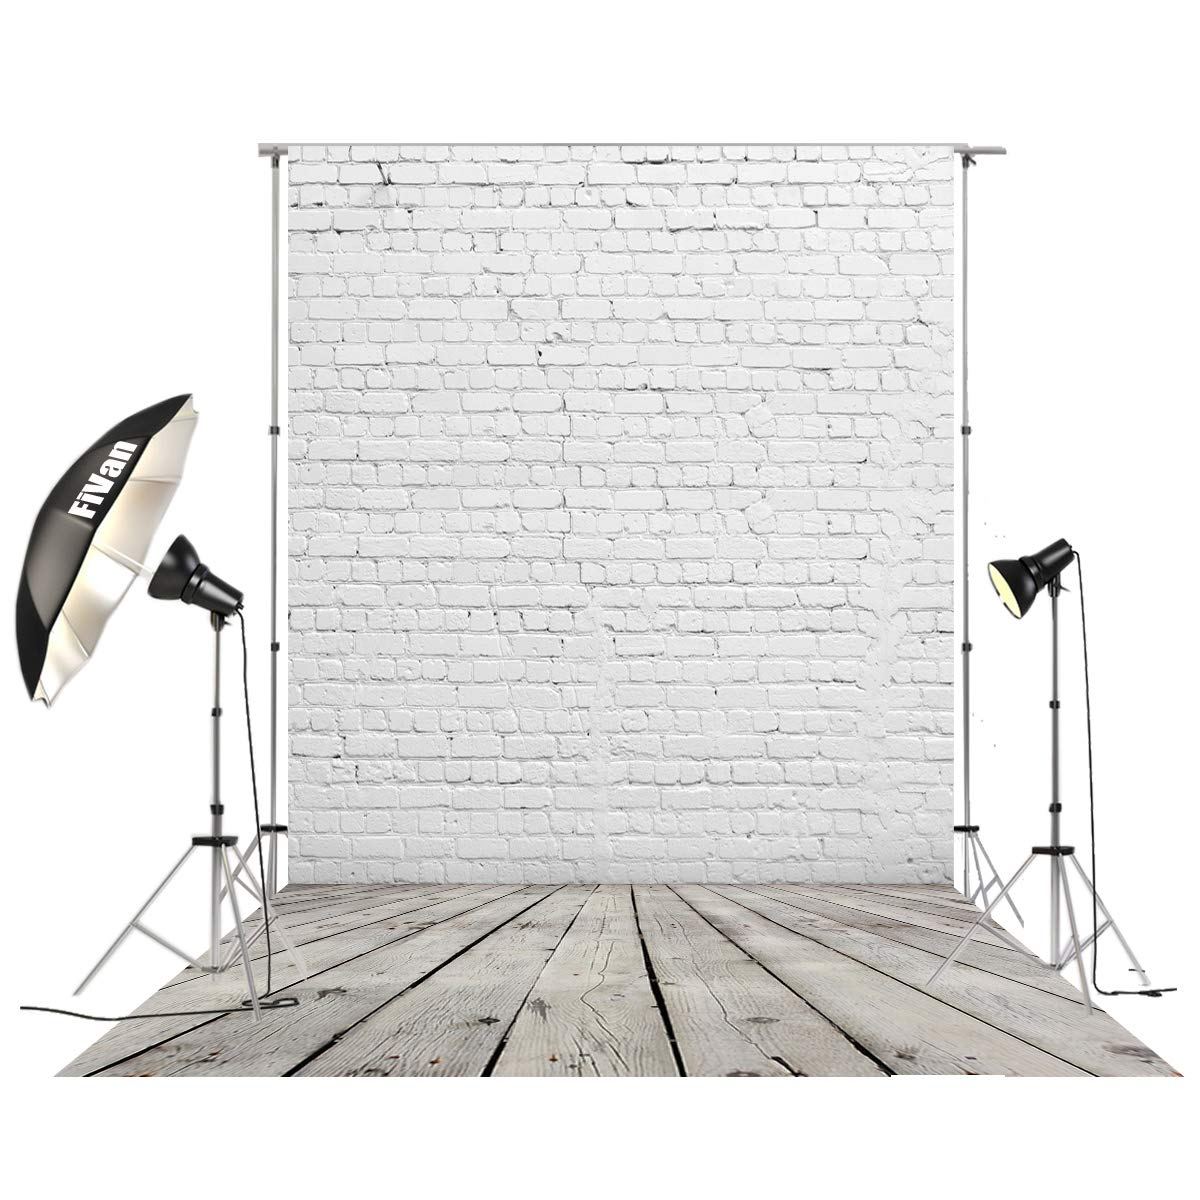 HUAYI 5'x10' Vinyl Backdrop for Photo Studio Pictures Home Decoration DIY Food Background Brick and Wood Floor D-2504